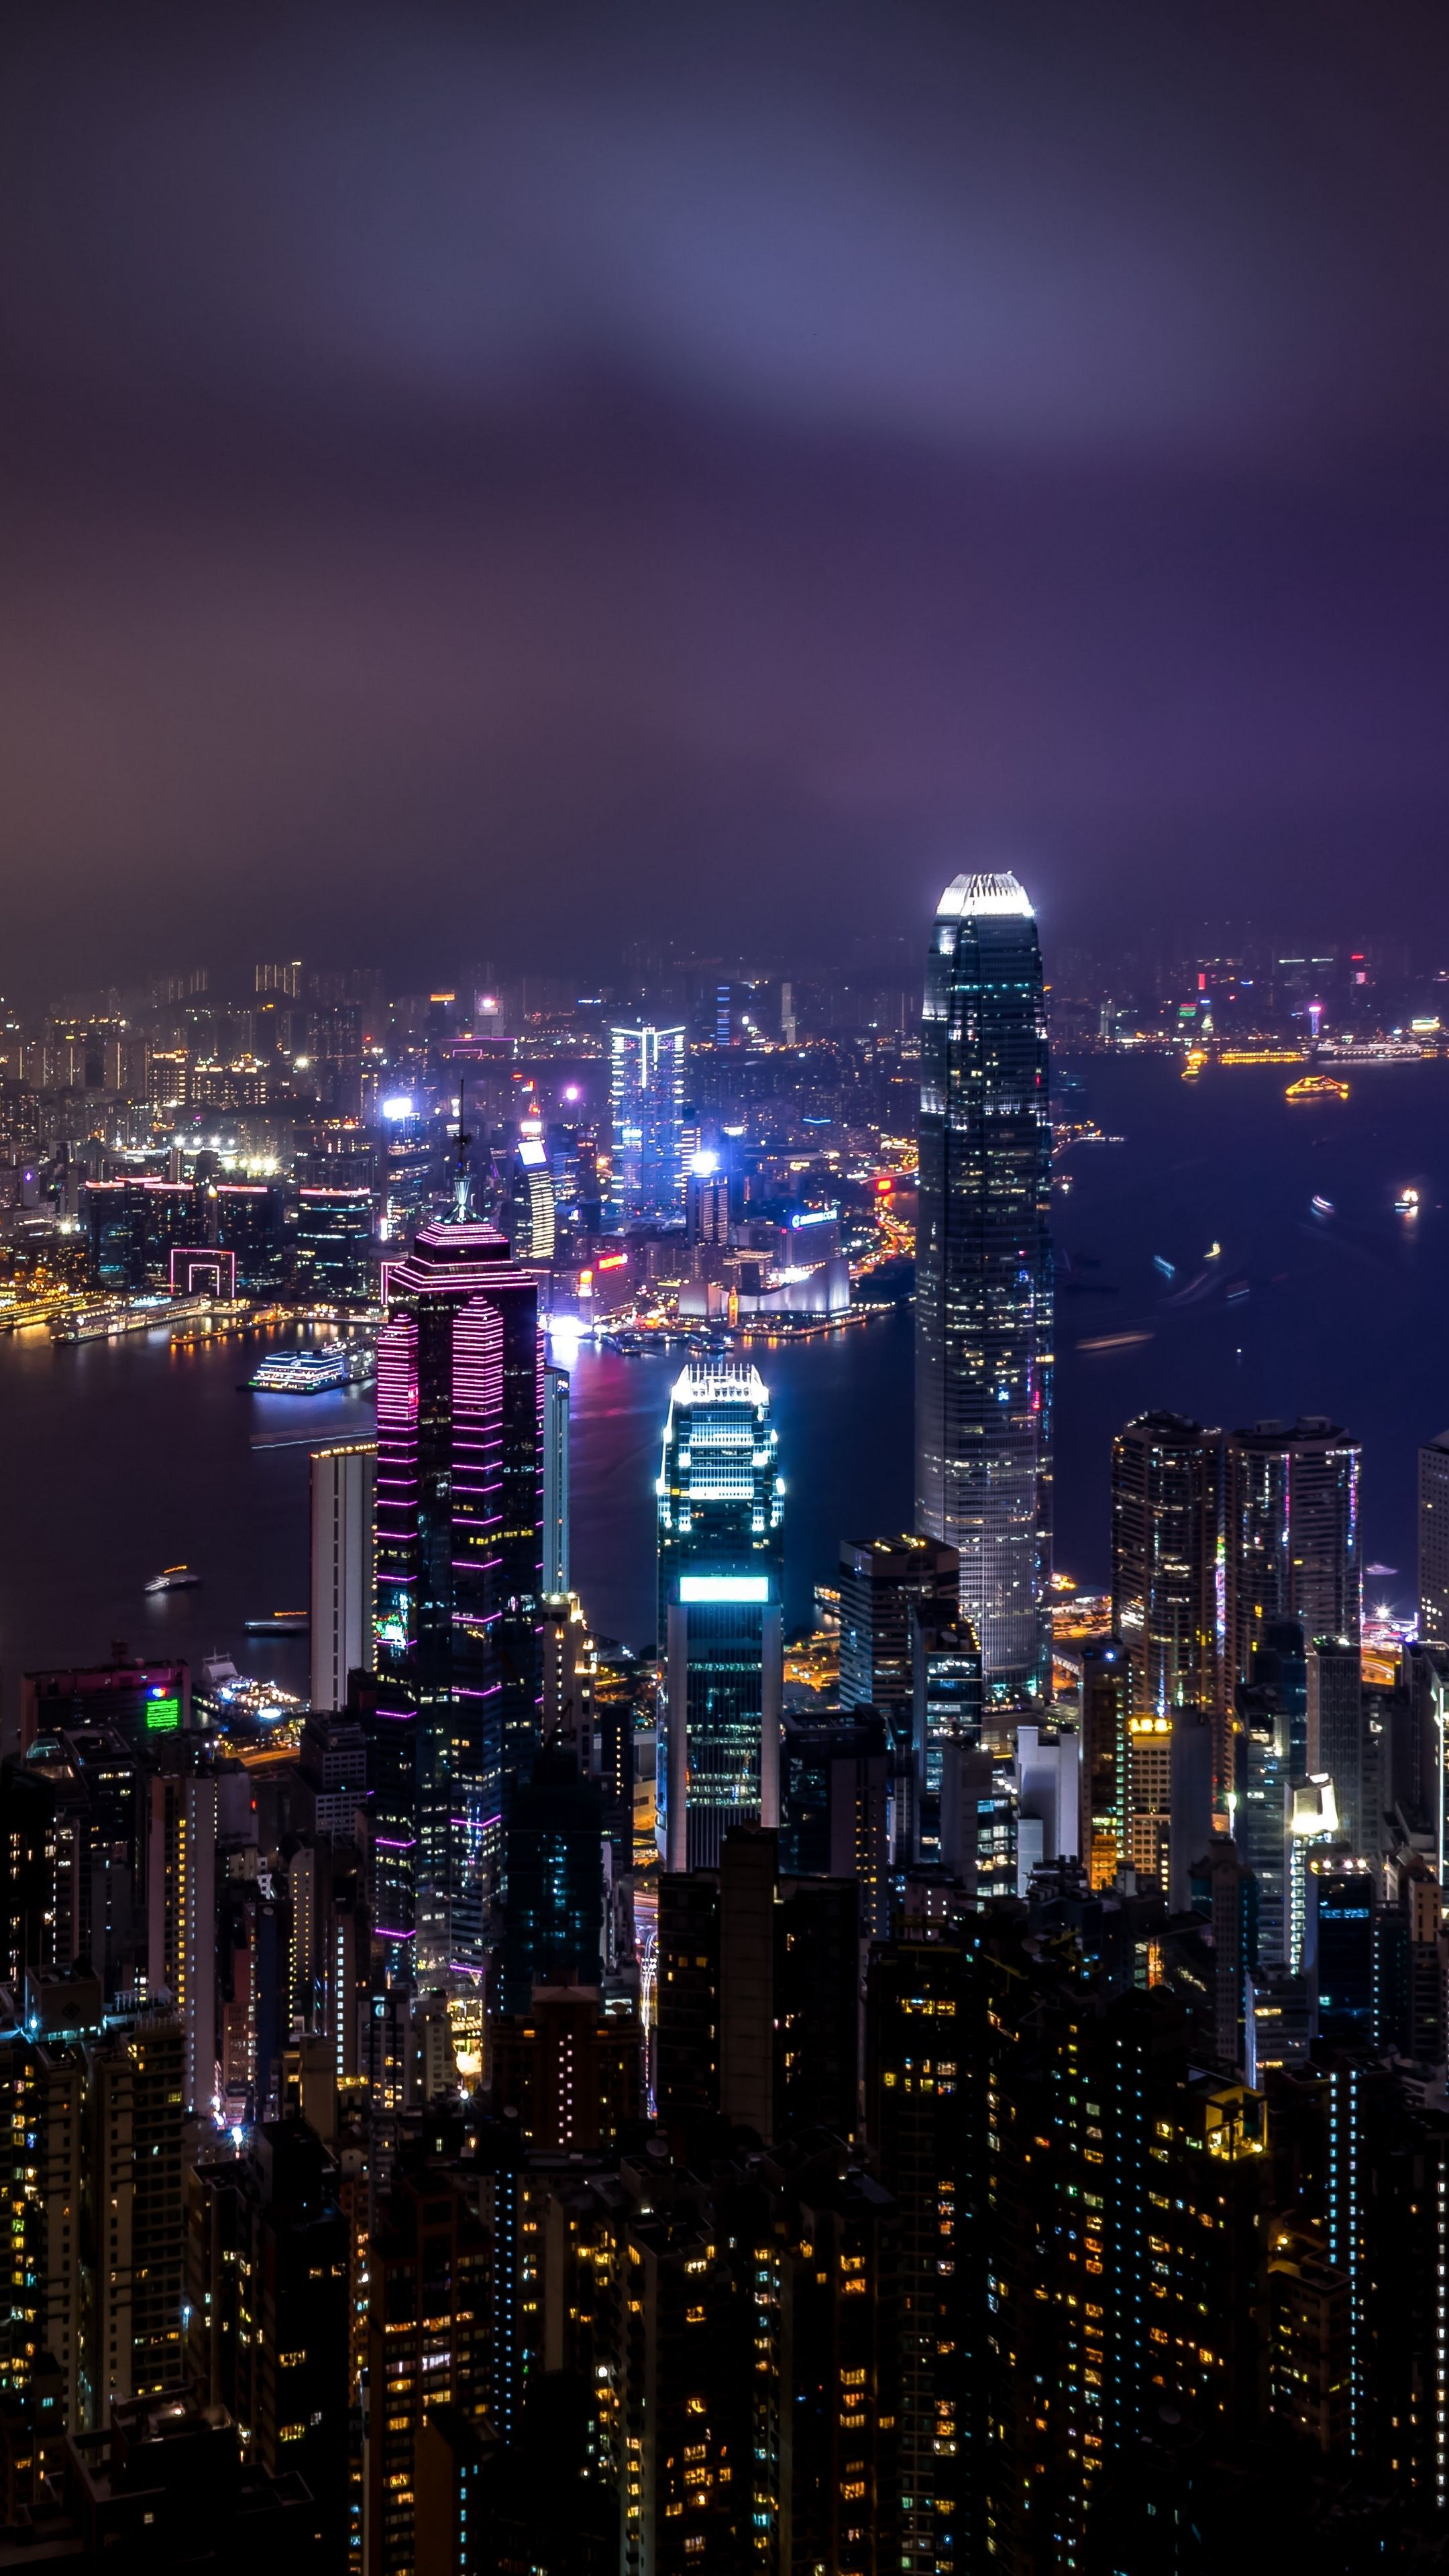 #Places hong kong, china, skyscrapers, night city, city lights #android #wallpapers #4k #hd ...